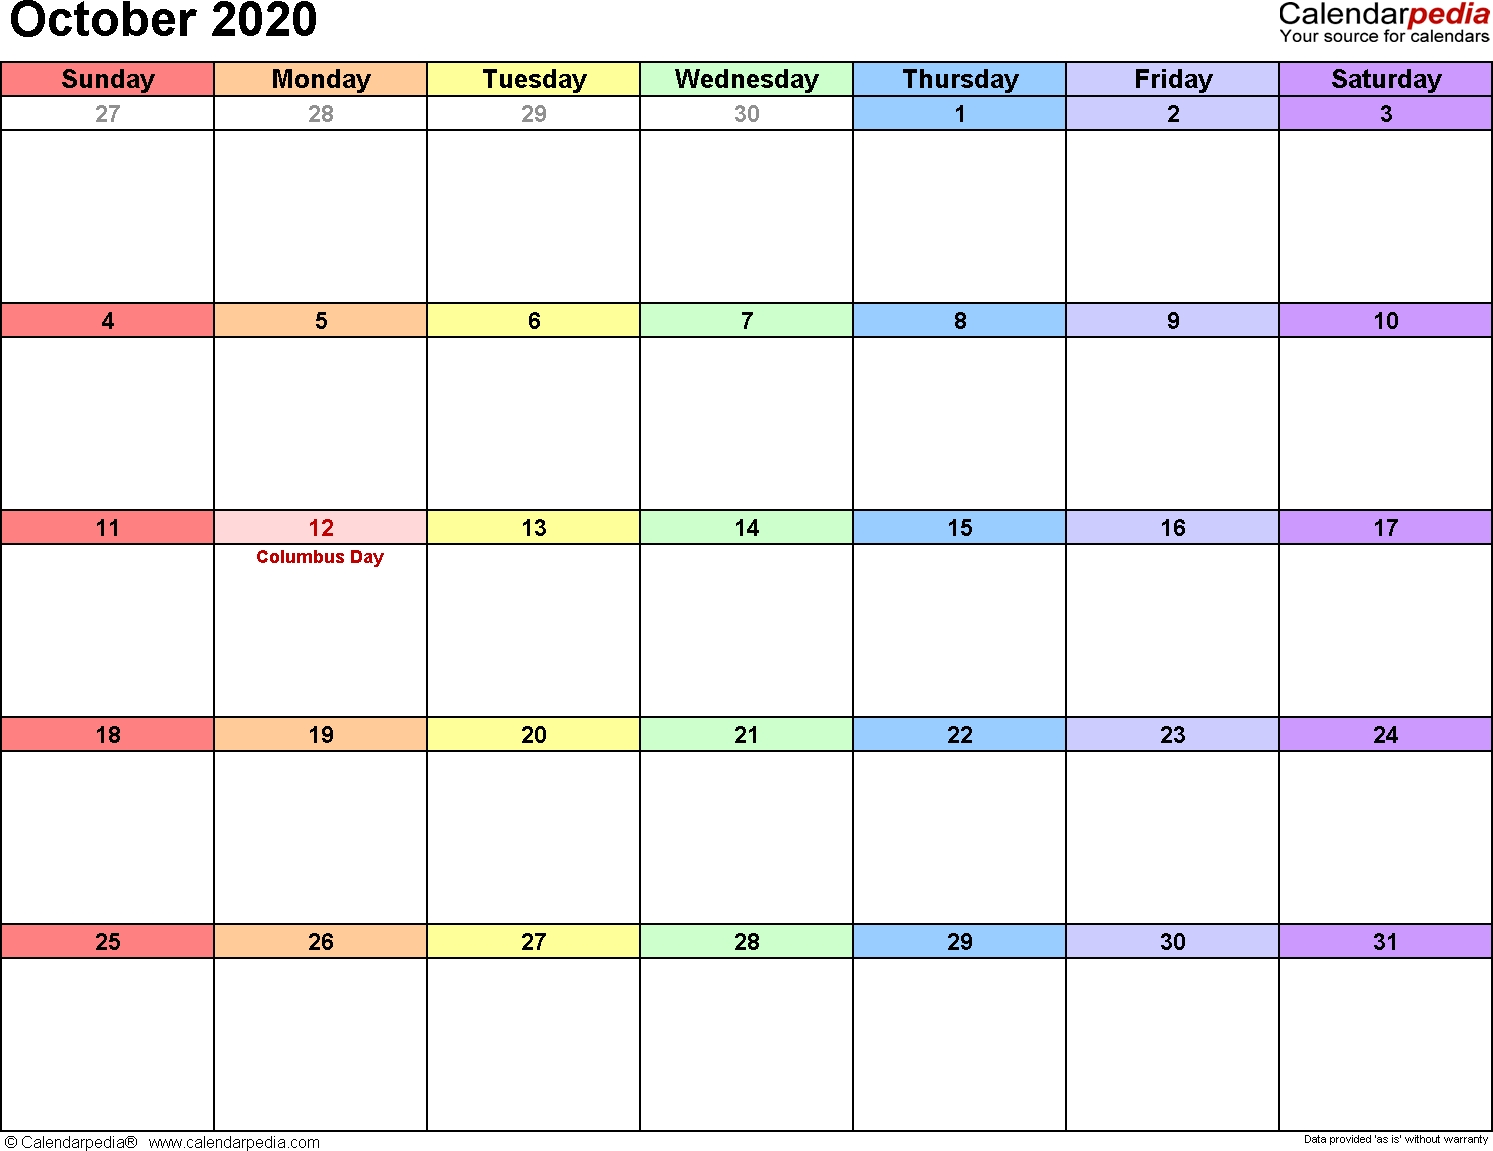 October 2020 Calendars For Word, Excel & Pdf